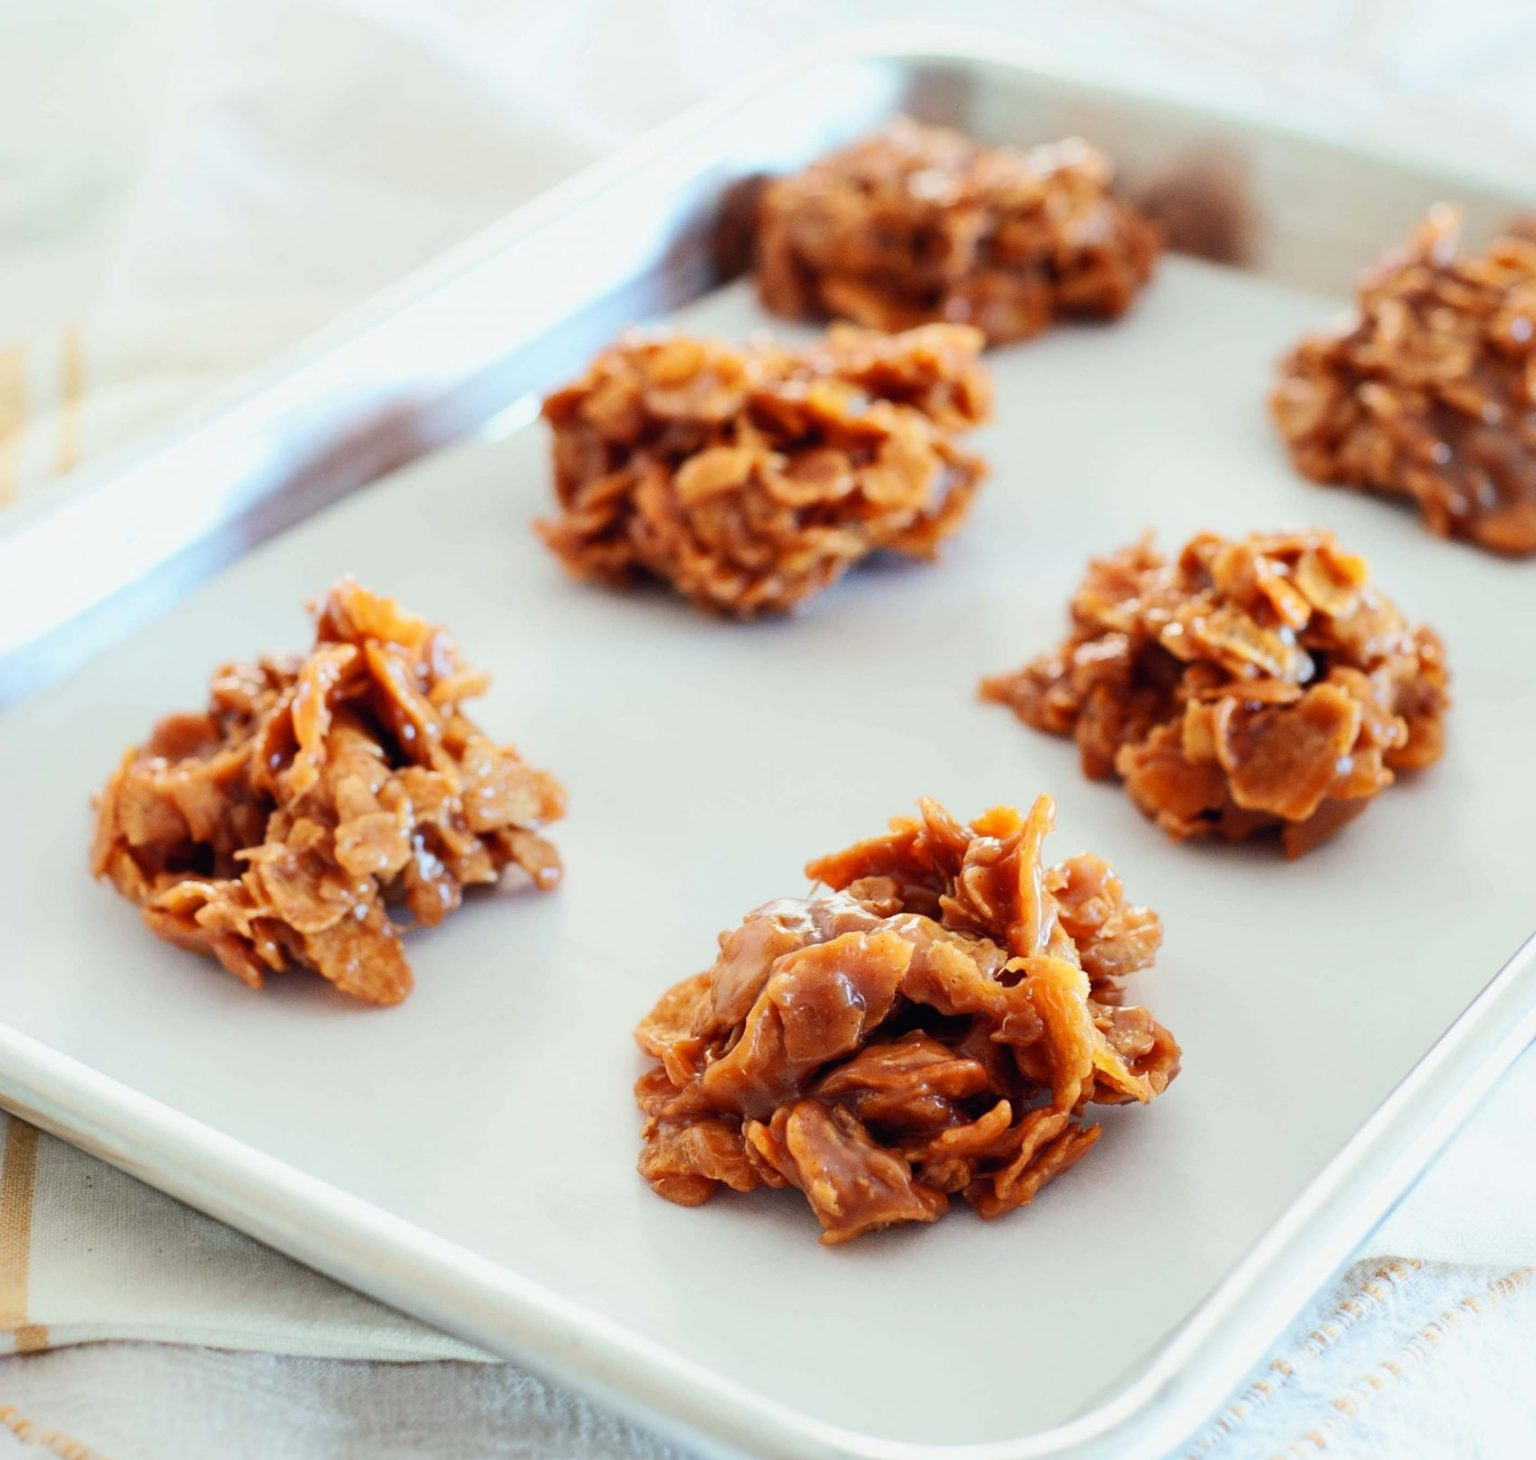 Vegan Intensely Addictive Cornflake Cookies with Chocolate Chips